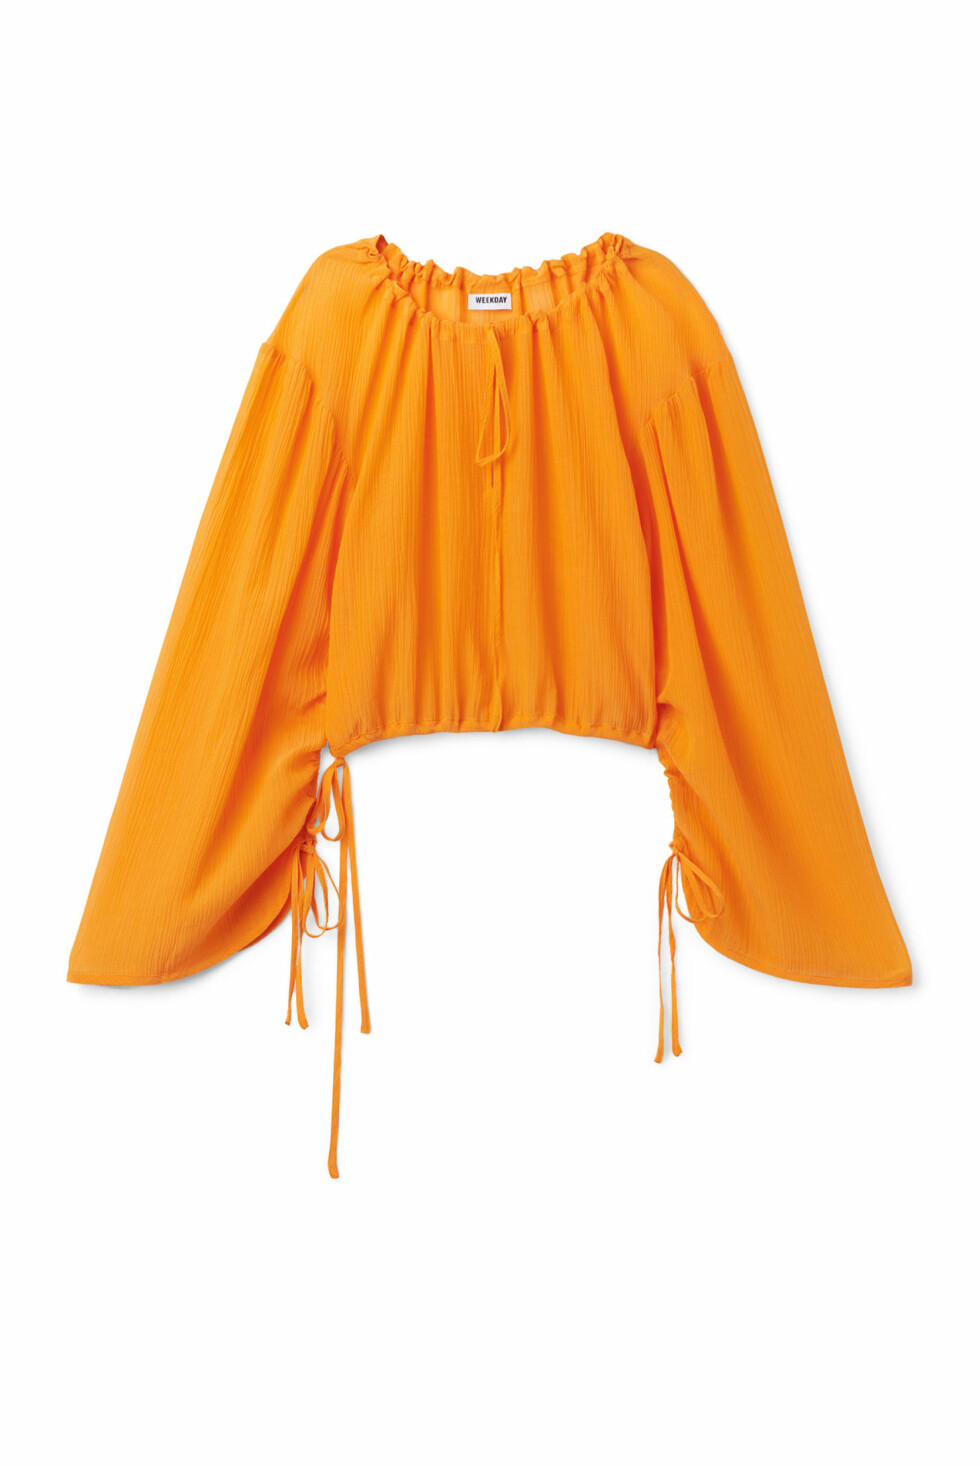 Fra Weekday |500,-| https://www.weekday.com/en_sek/women/categories/shirts-and-blouses/product.pax-blouse-yellow.0588297001.html